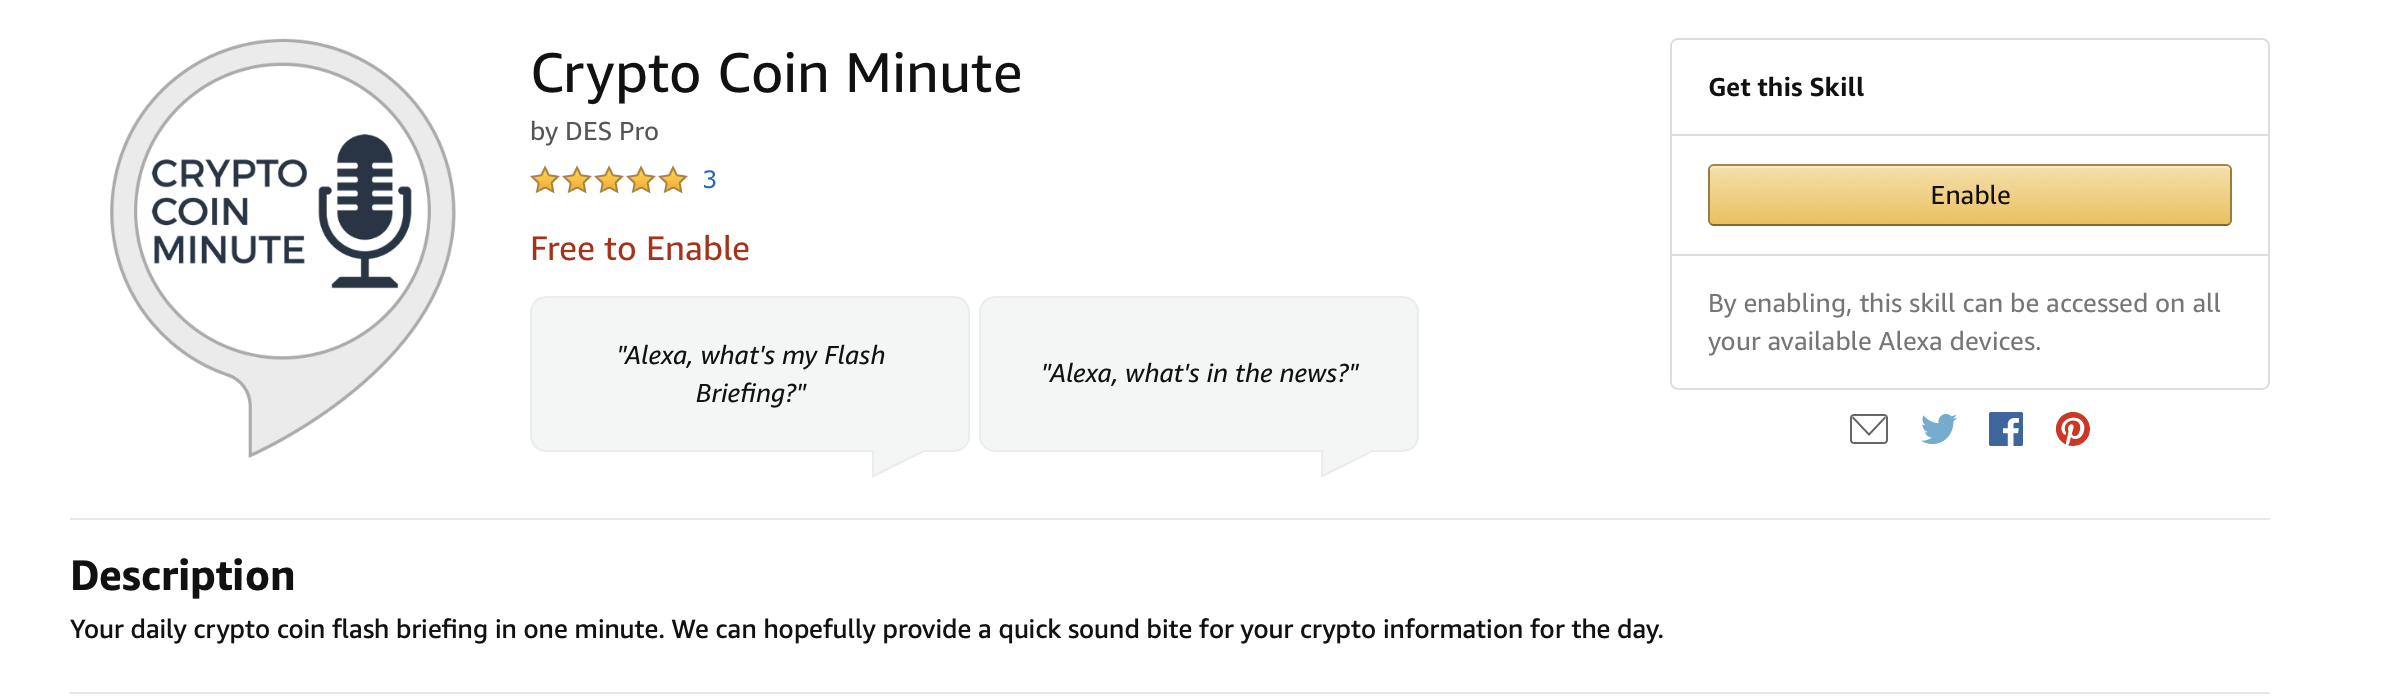 crypto-coin-minute-share.png